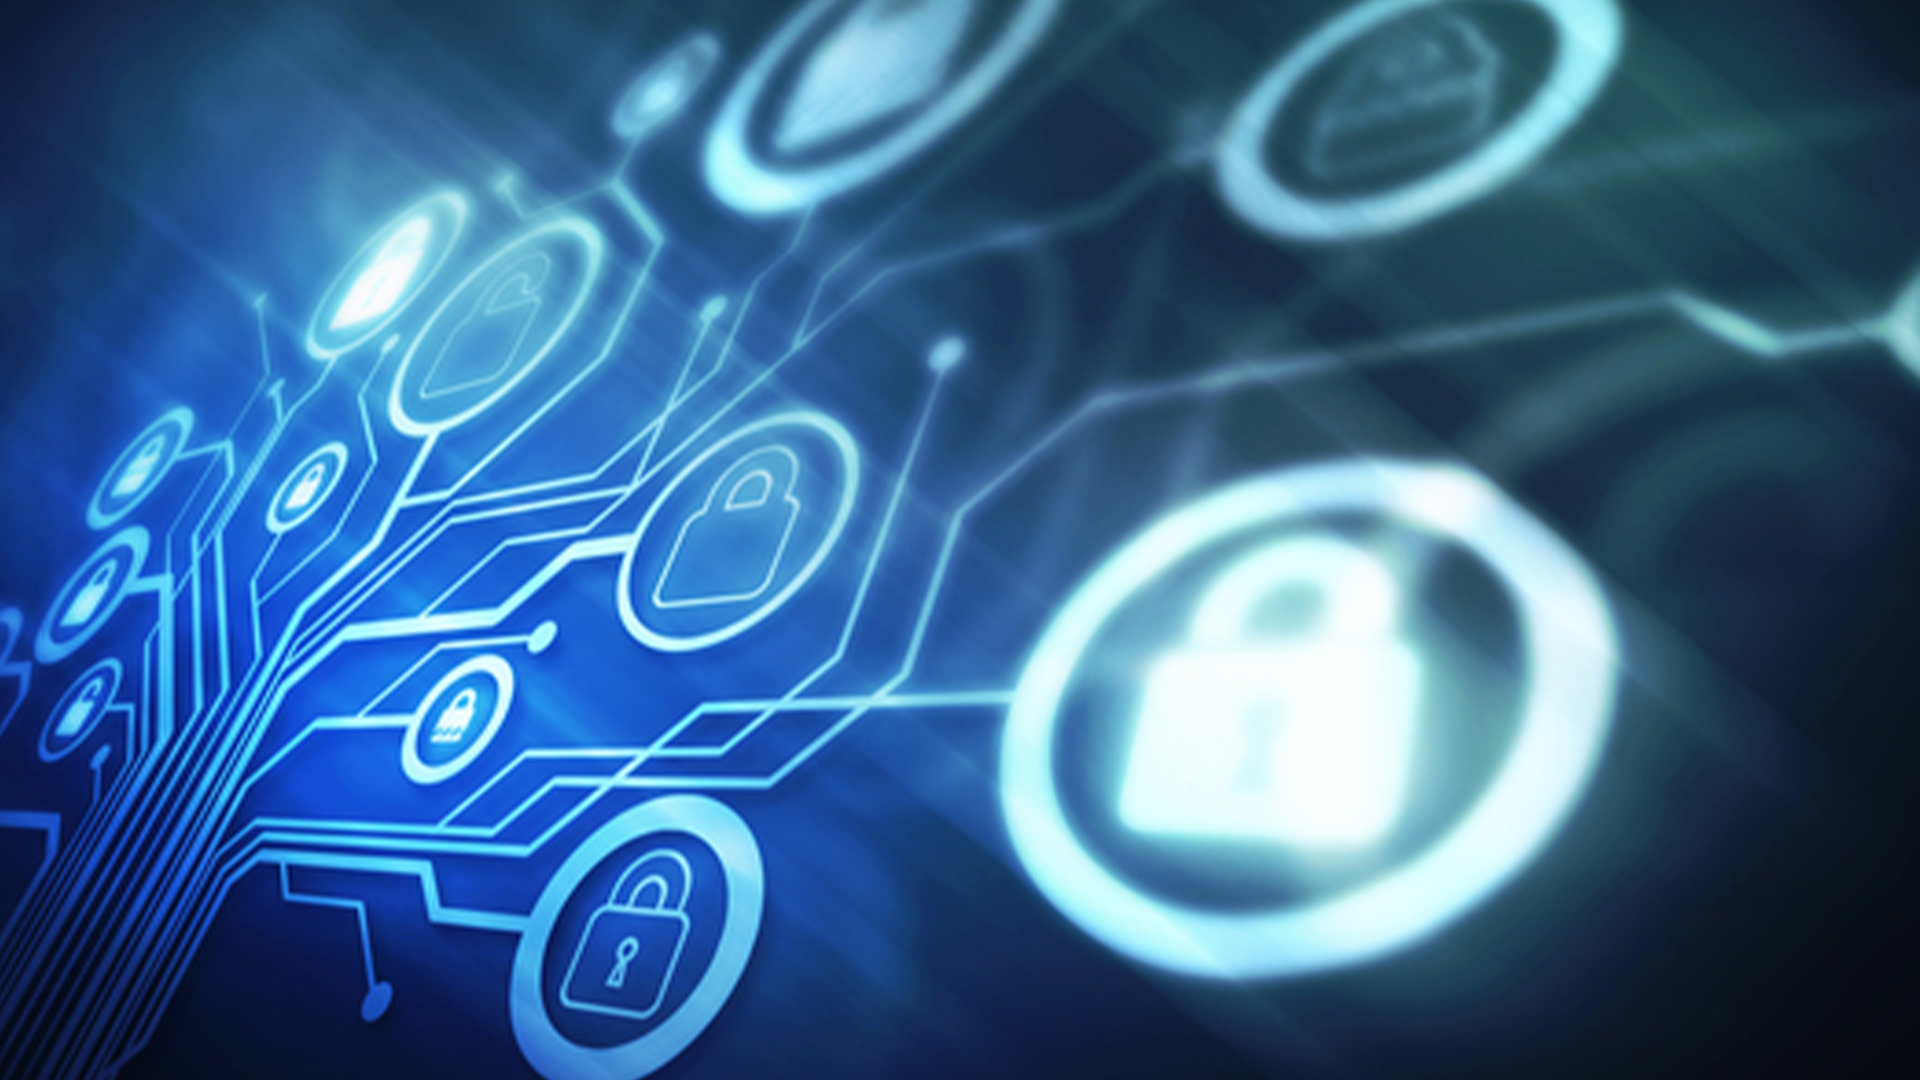 The cybersecurity standards set to impact every Australian business and director